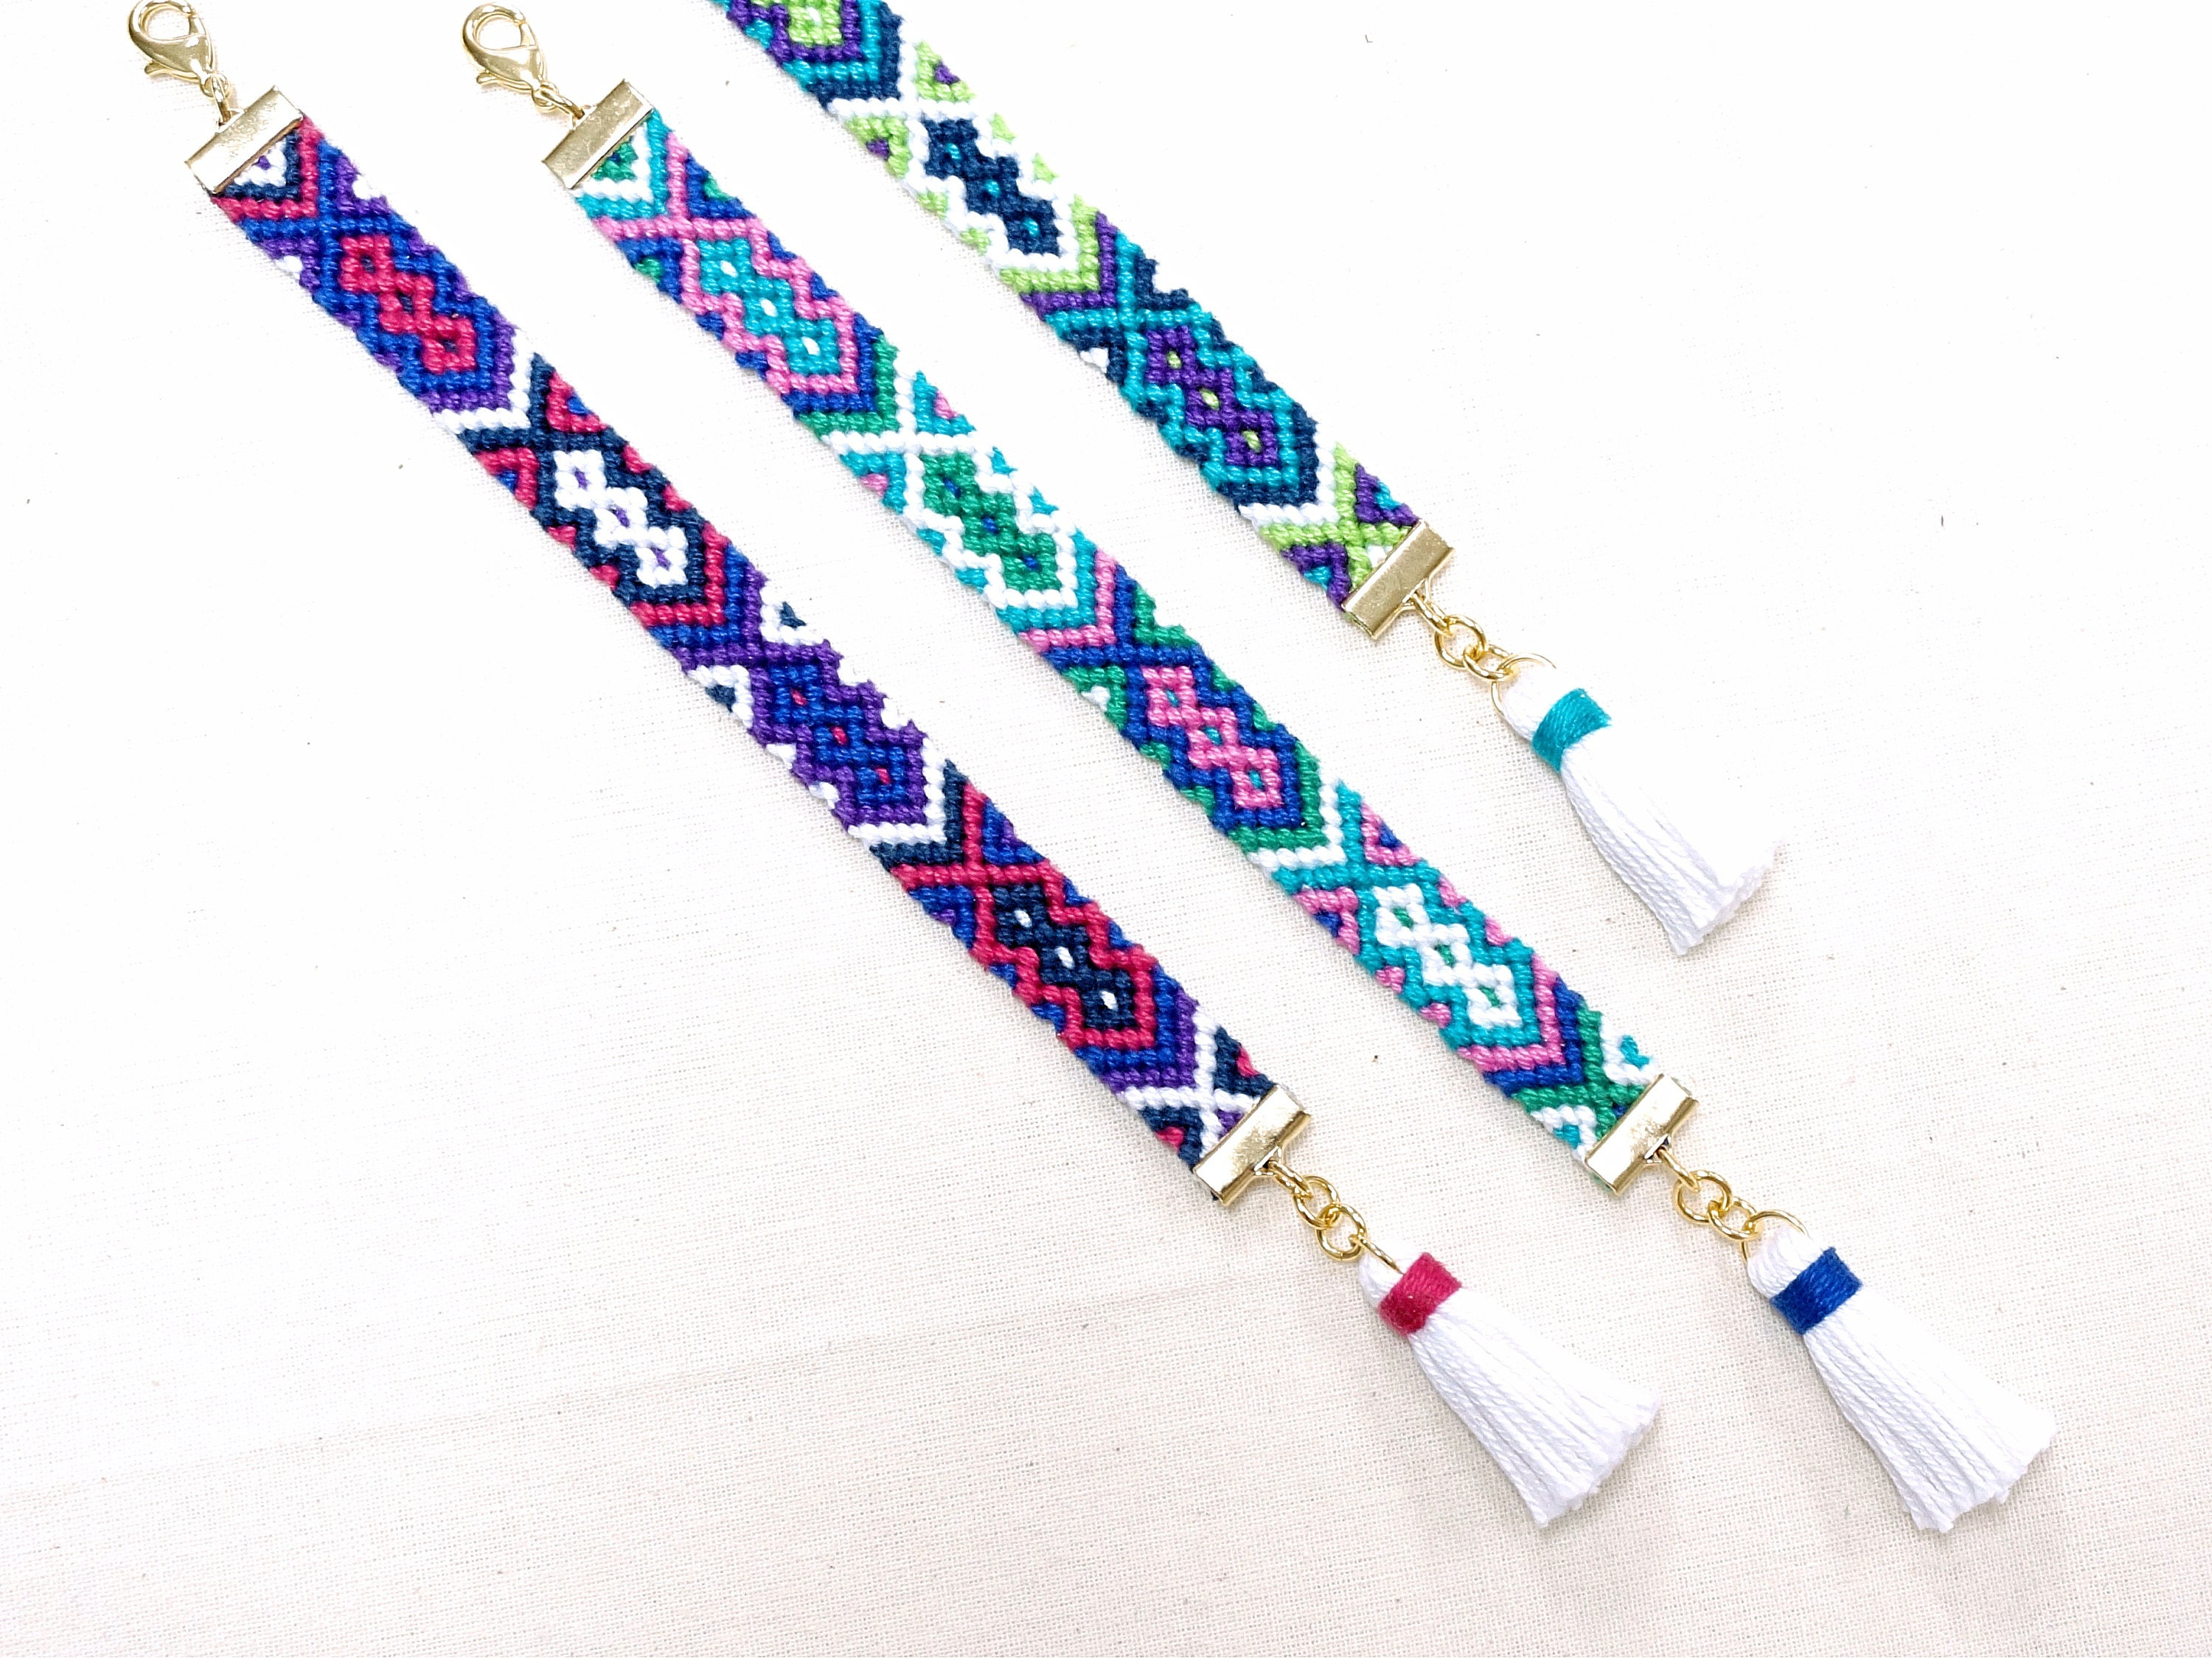 sister luck hand diamond yunnan boat rope for charm bracelets colorful knot uk deagon folk of product handmade fate bracelet style festival year charms